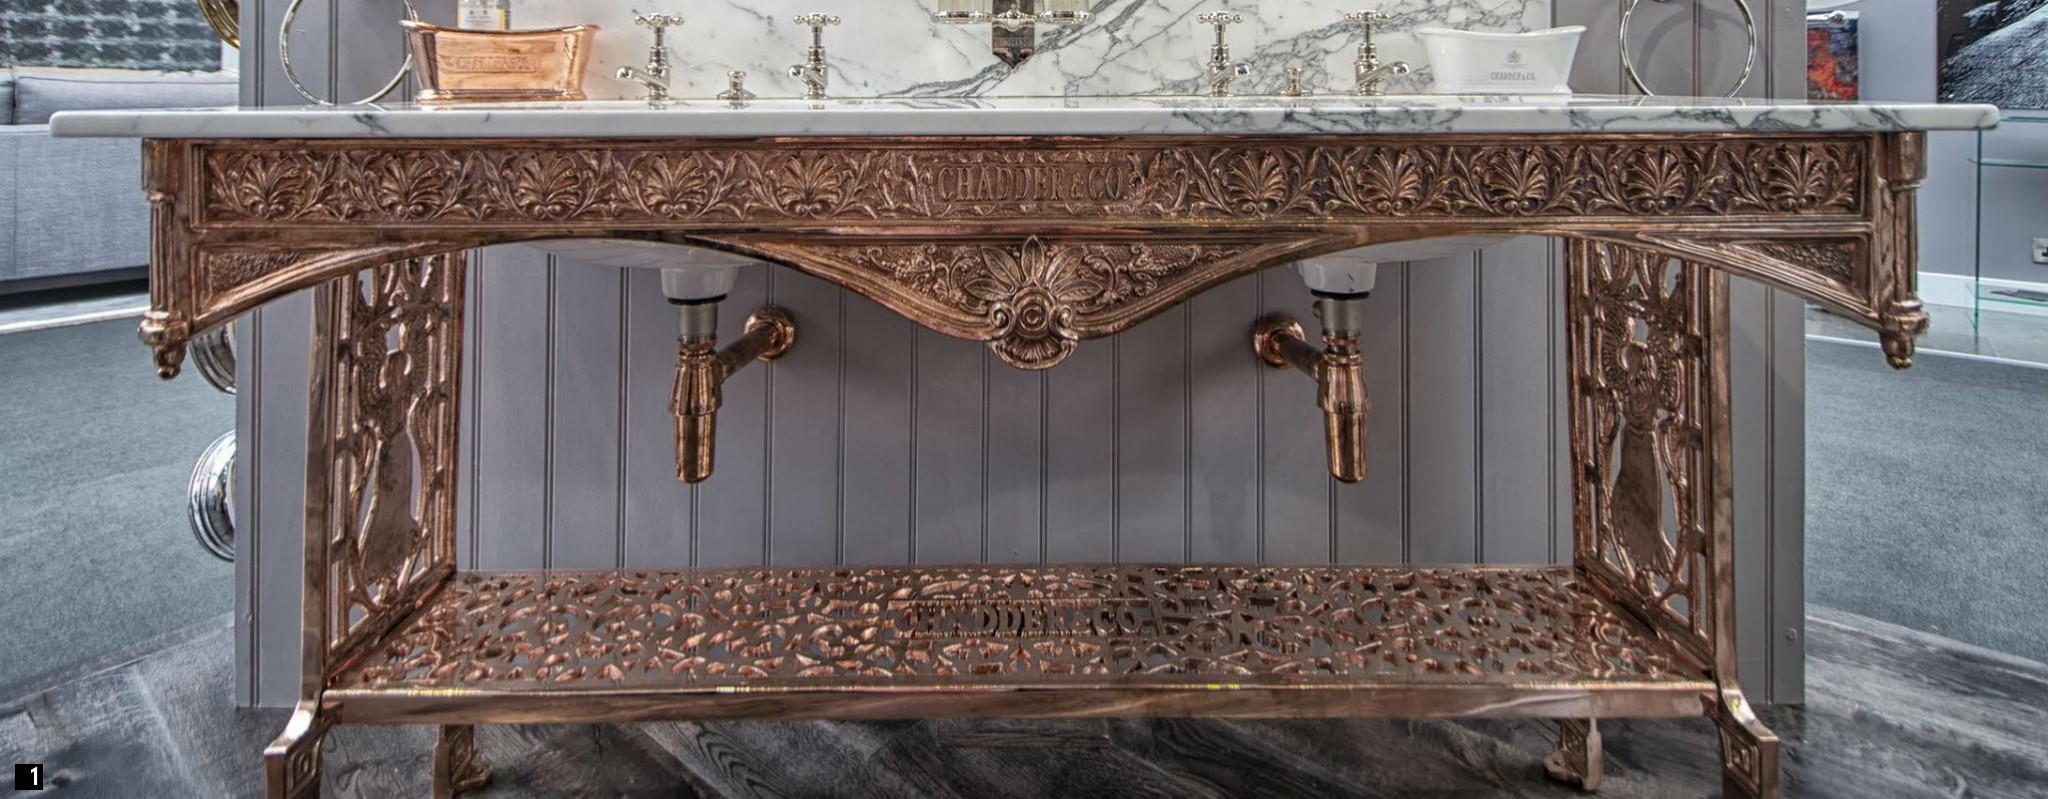 Chadder Vintage Copper Washstand with Marble Top Nickel Taps , Victorian Marble Copper Washstand